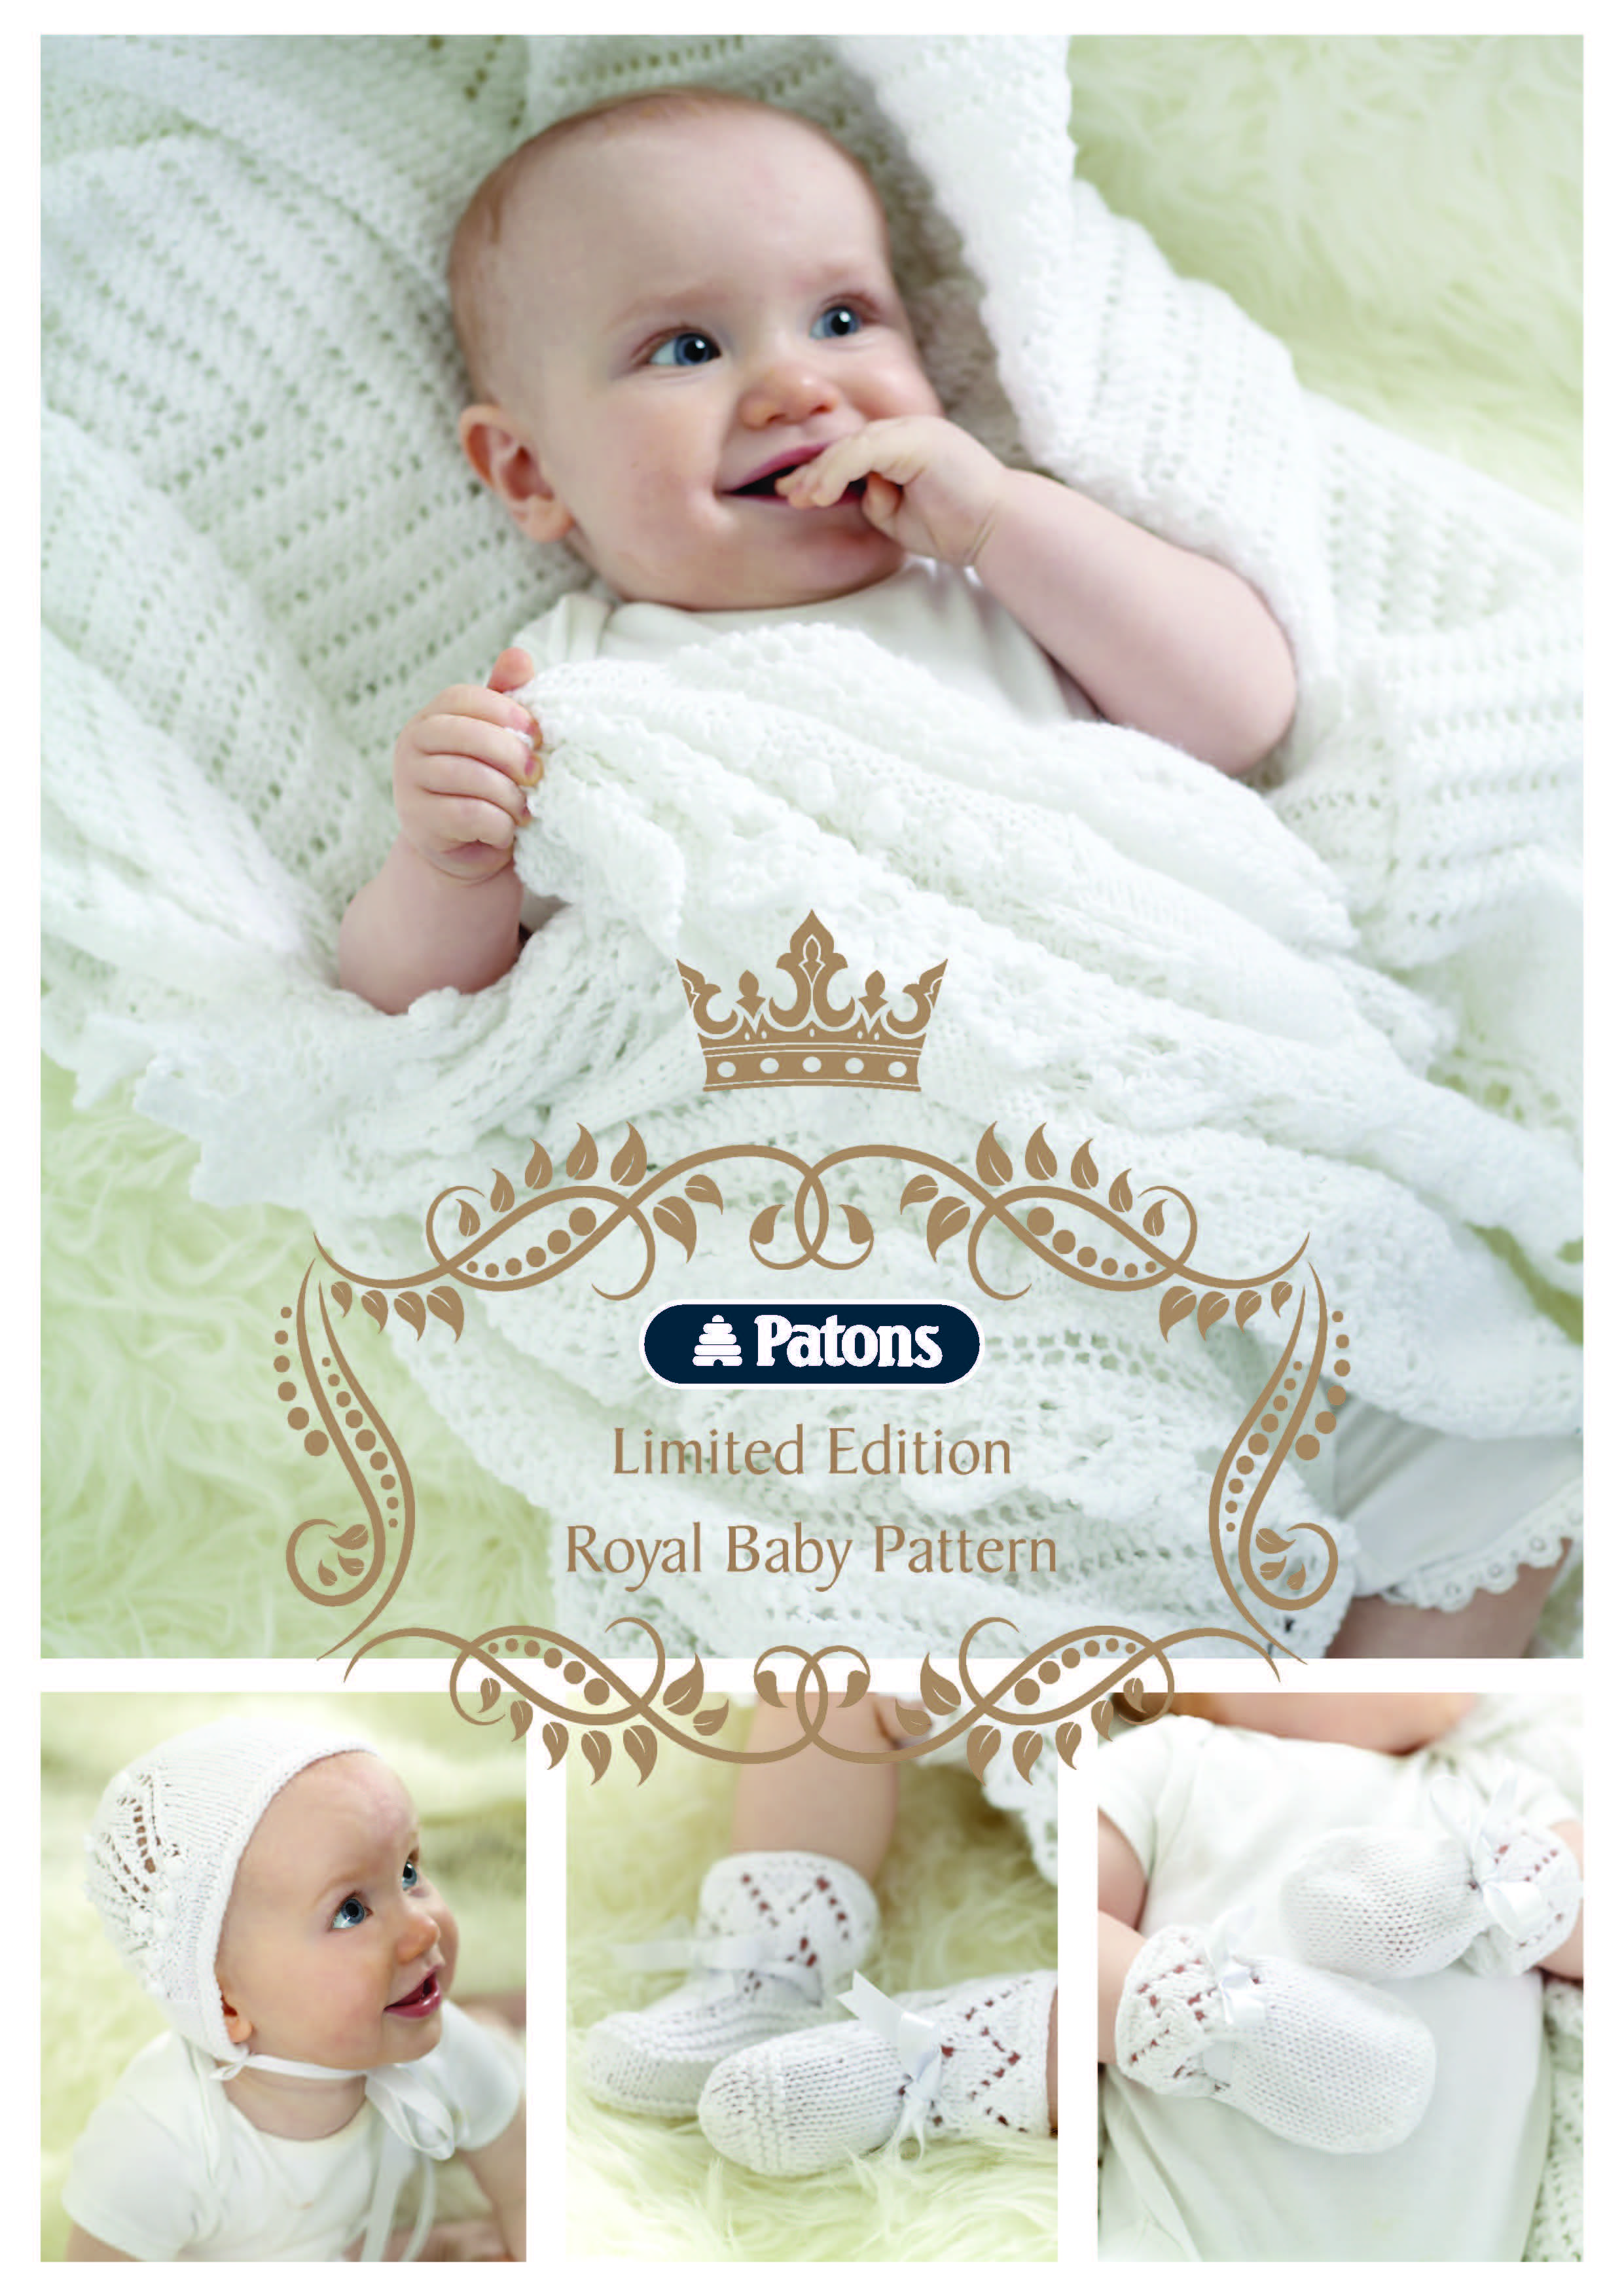 Royal baby knitting patterns: free with purchase of any Patons yarn ...